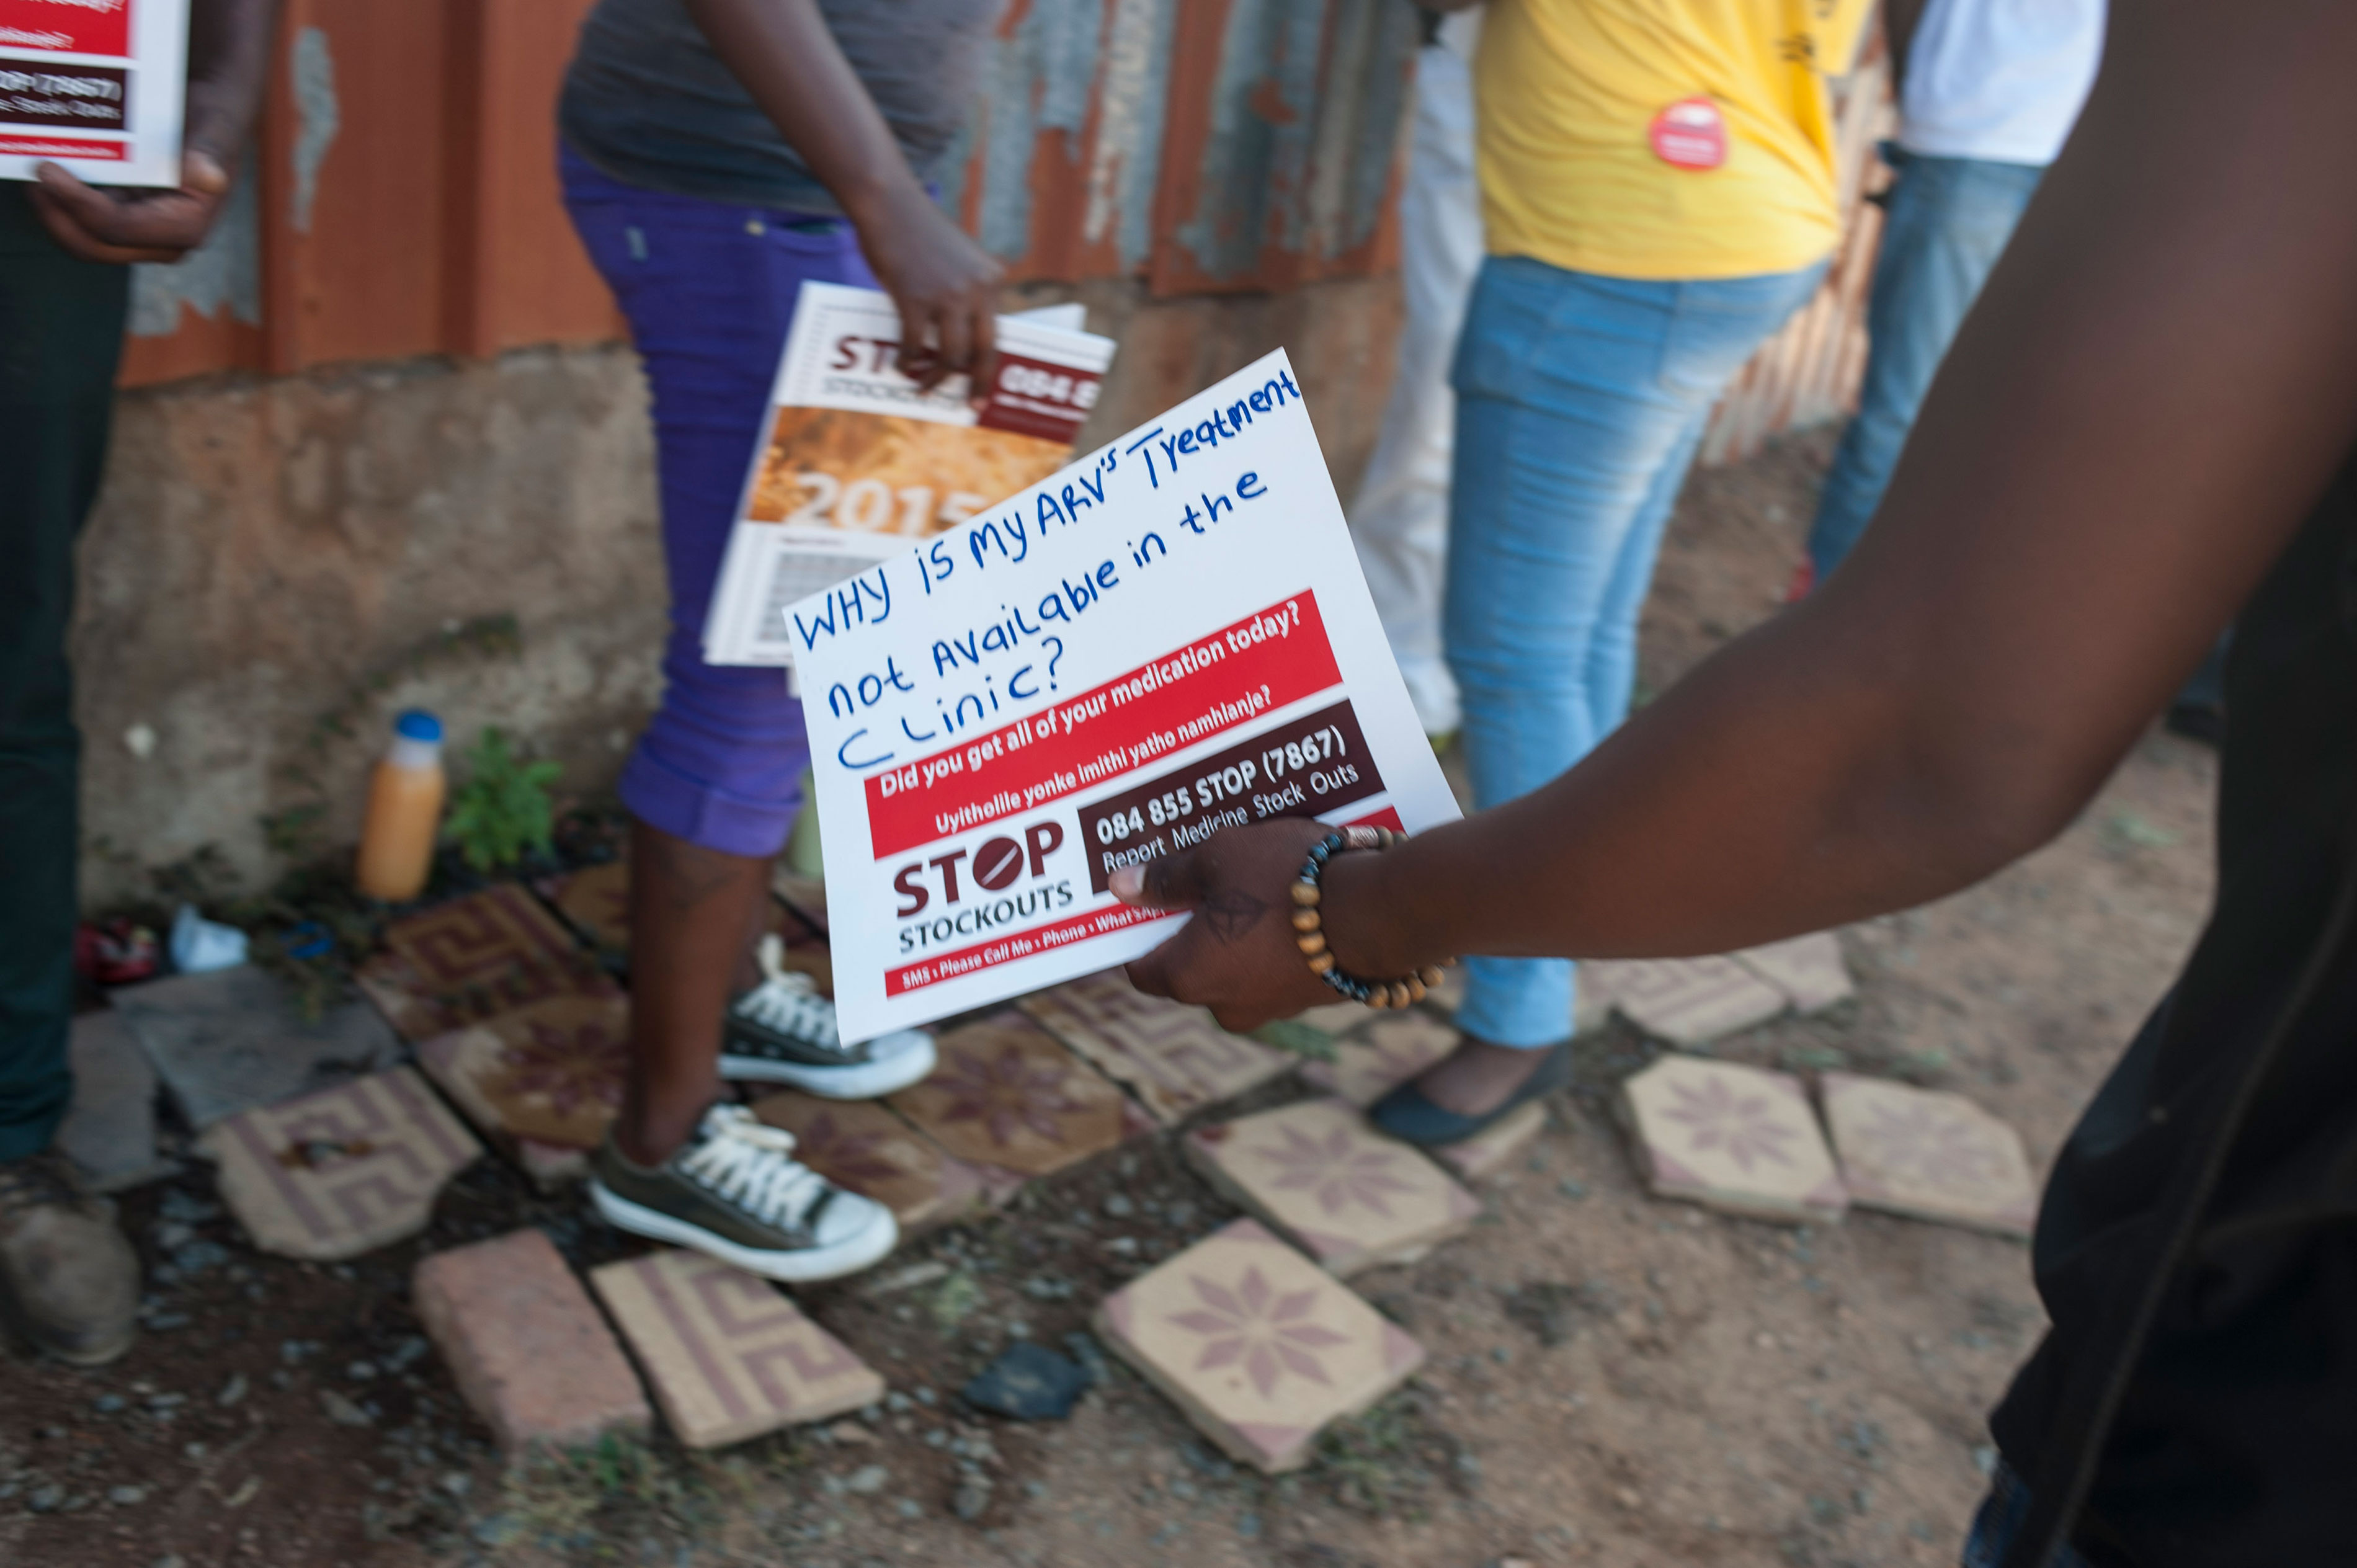 A woman holds a sign at the Stop Stock Outs (SSP) activist meeting in Soshanguve, a township outside of Pretoria on April 16, 2015.